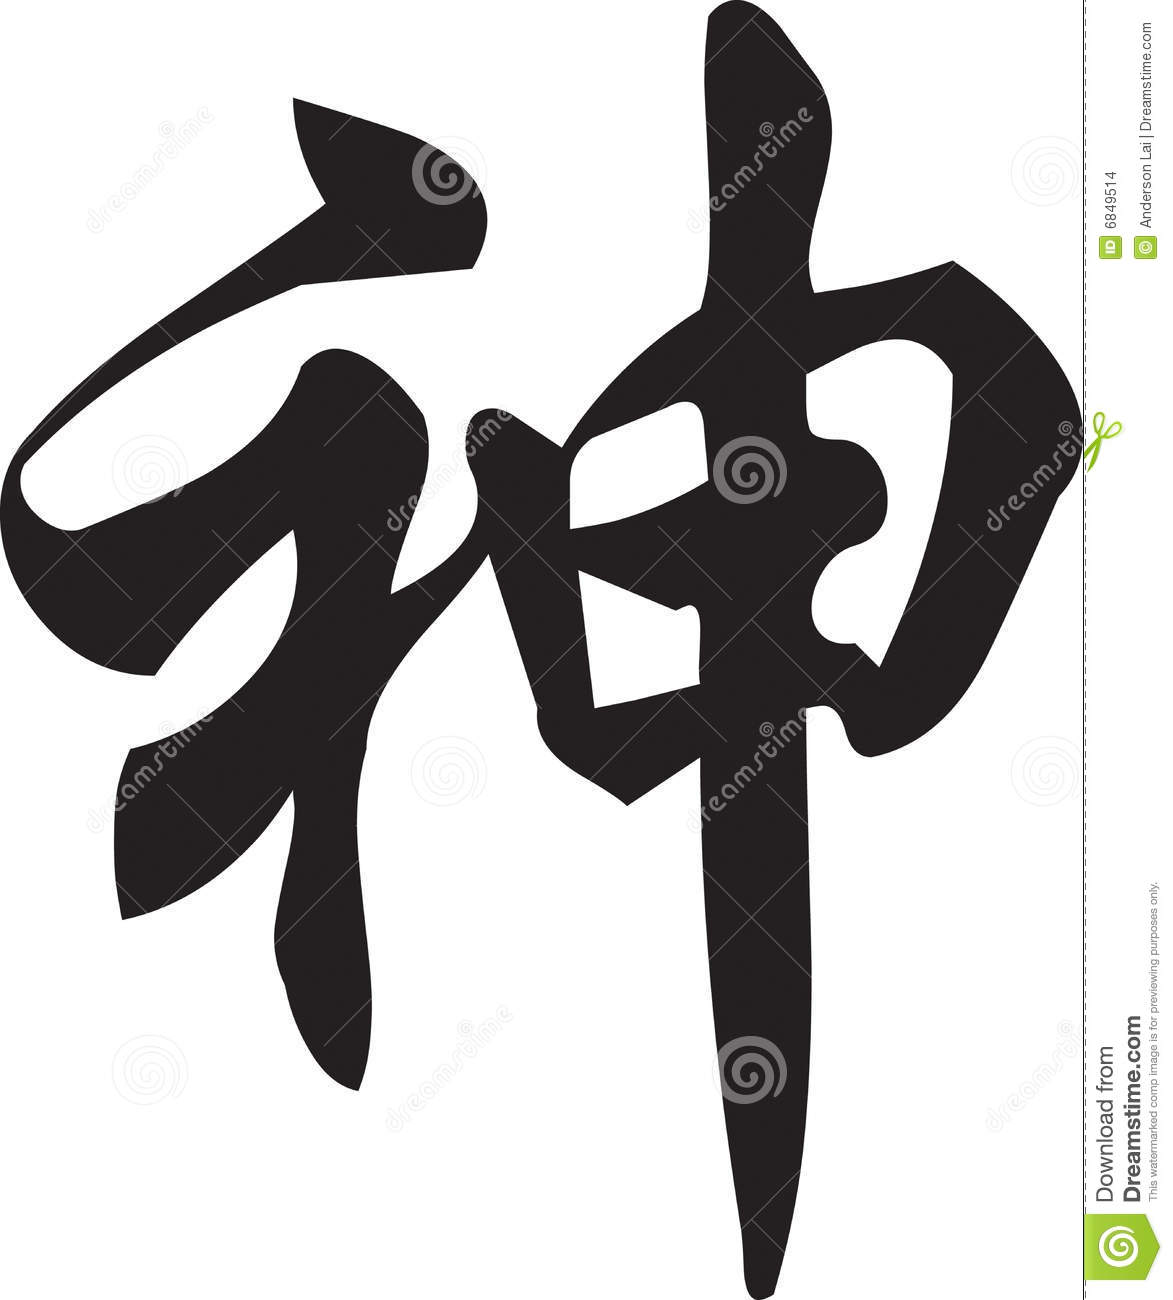 Chinese Character Stock Vector Illustration Of Calligraphy 6849514